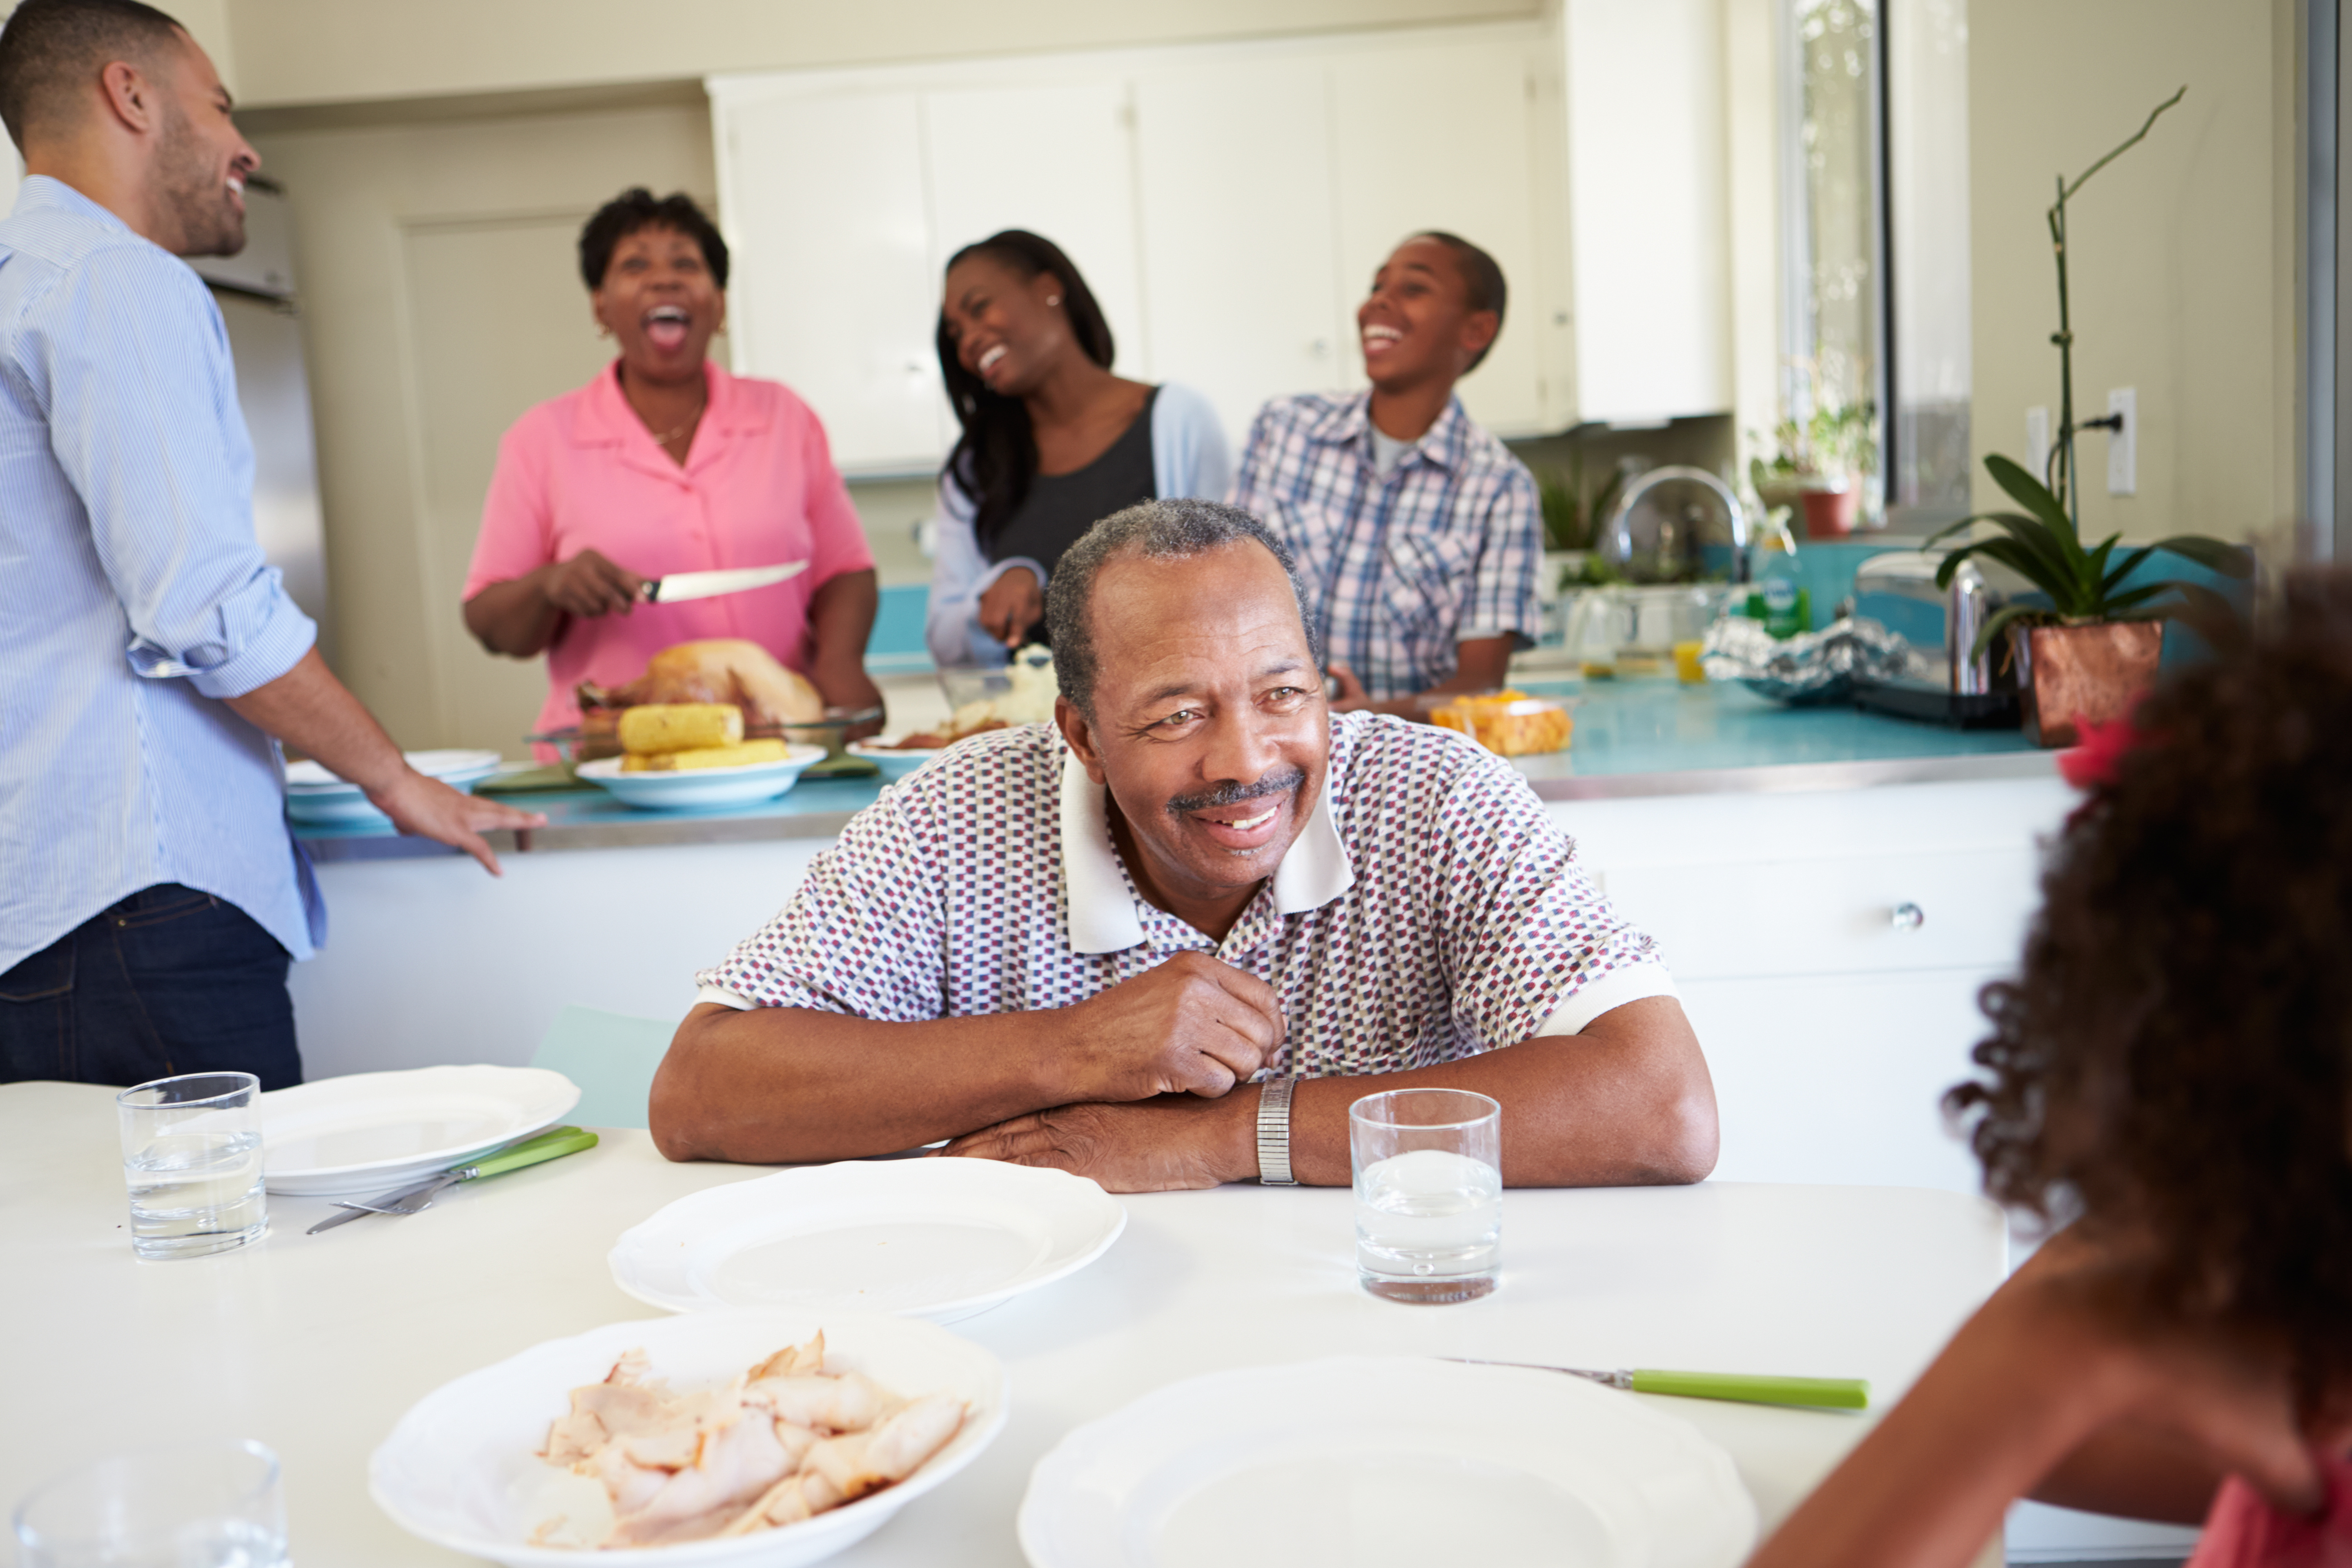 Setting boundaries could help save dysfunctional family relationships